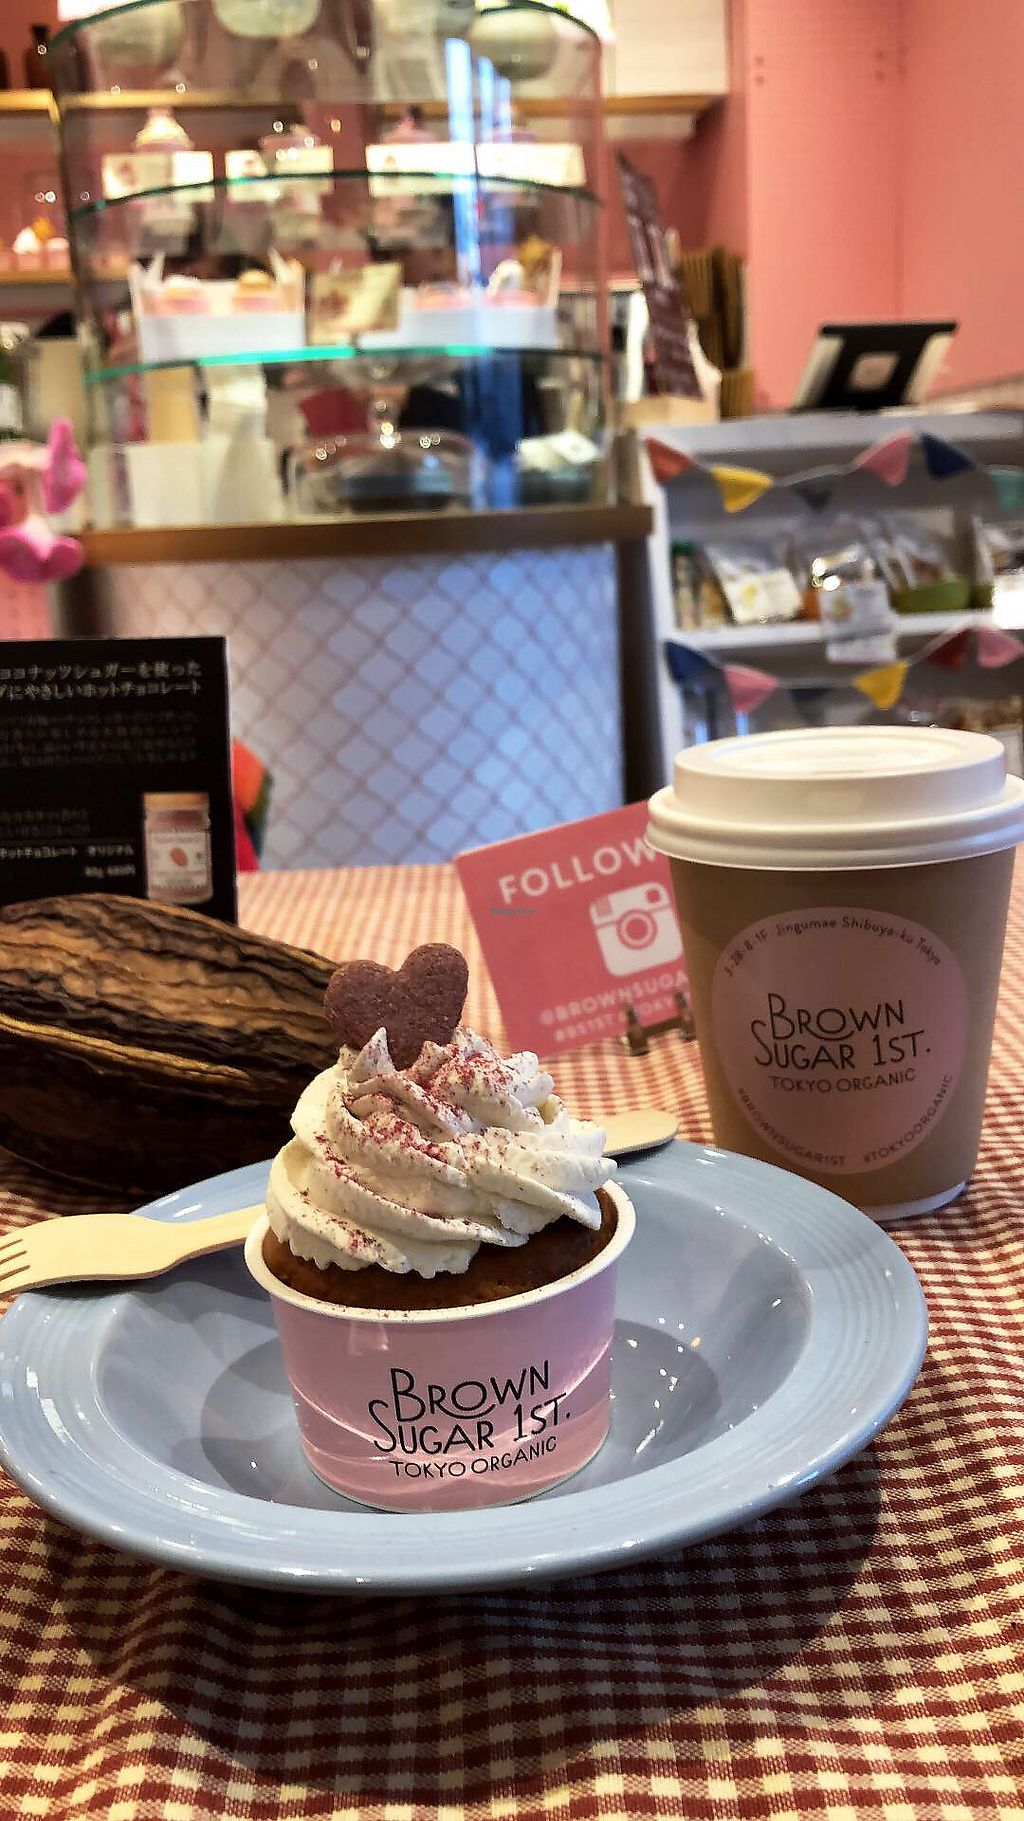 "Photo of Brown Sugar 1st  by <a href=""/members/profile/imsamanthalee"">imsamanthalee</a> <br/>Hot chocolate and chocolate vanilla cupcake  <br/> February 26, 2018  - <a href='/contact/abuse/image/76010/364041'>Report</a>"